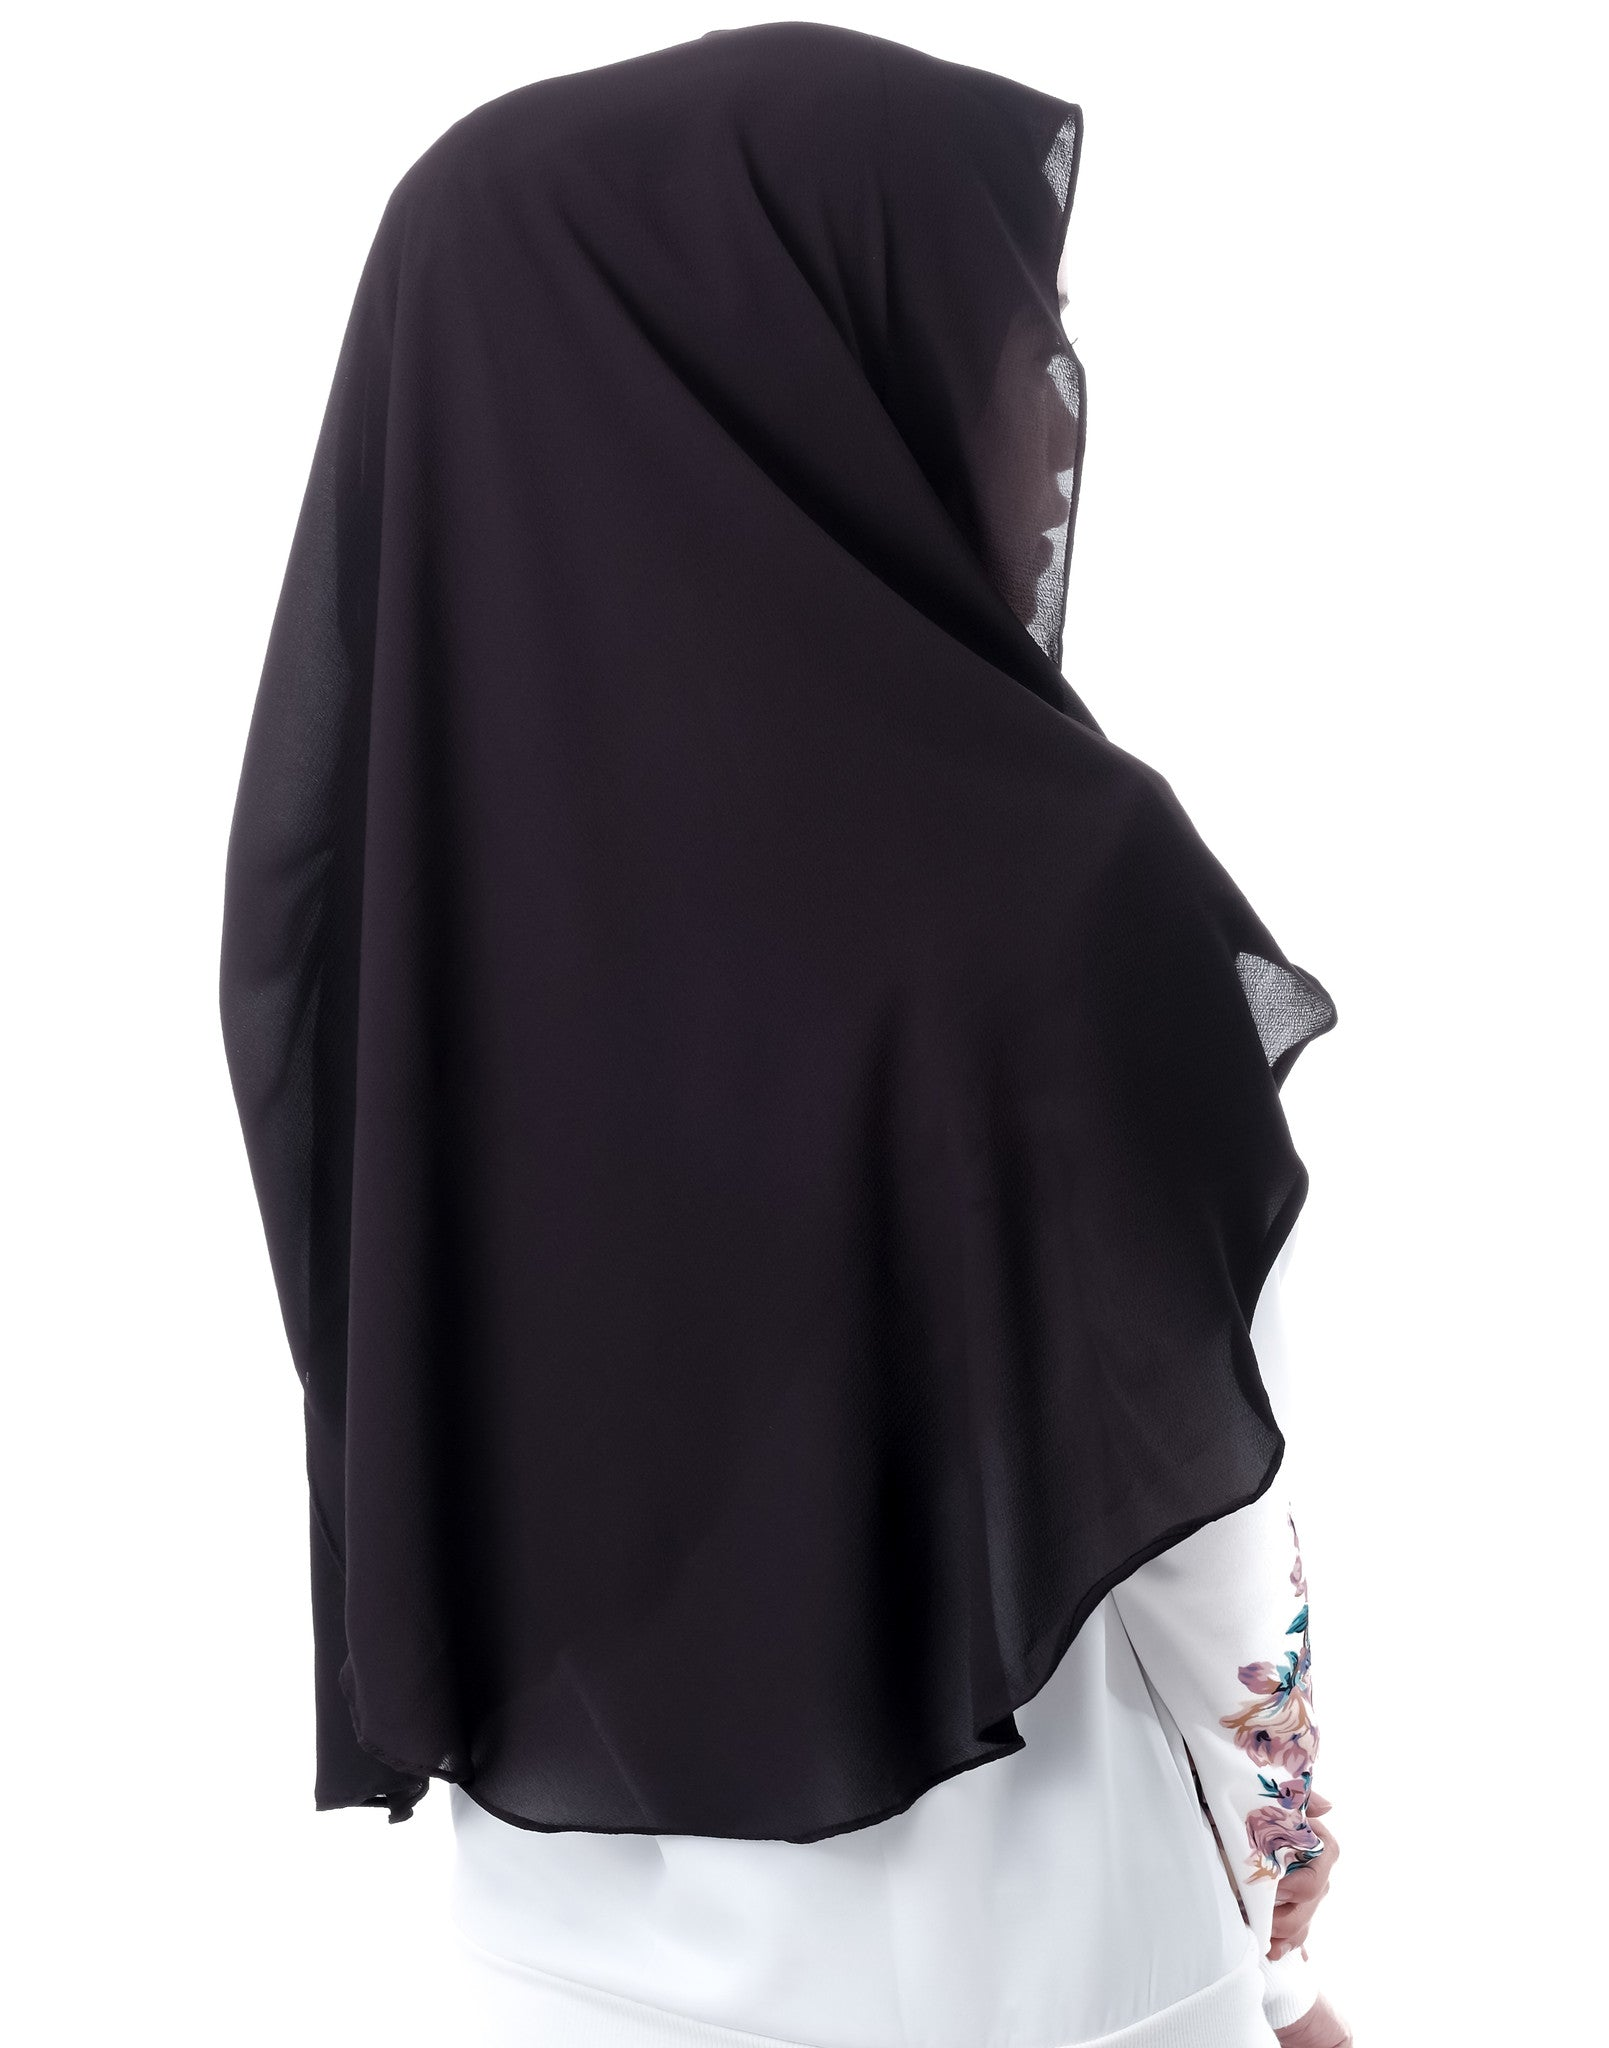 Dshawl in Black by Thiirty8. Pinless Full Instant Shawl. Made of Bubble Chiffon.